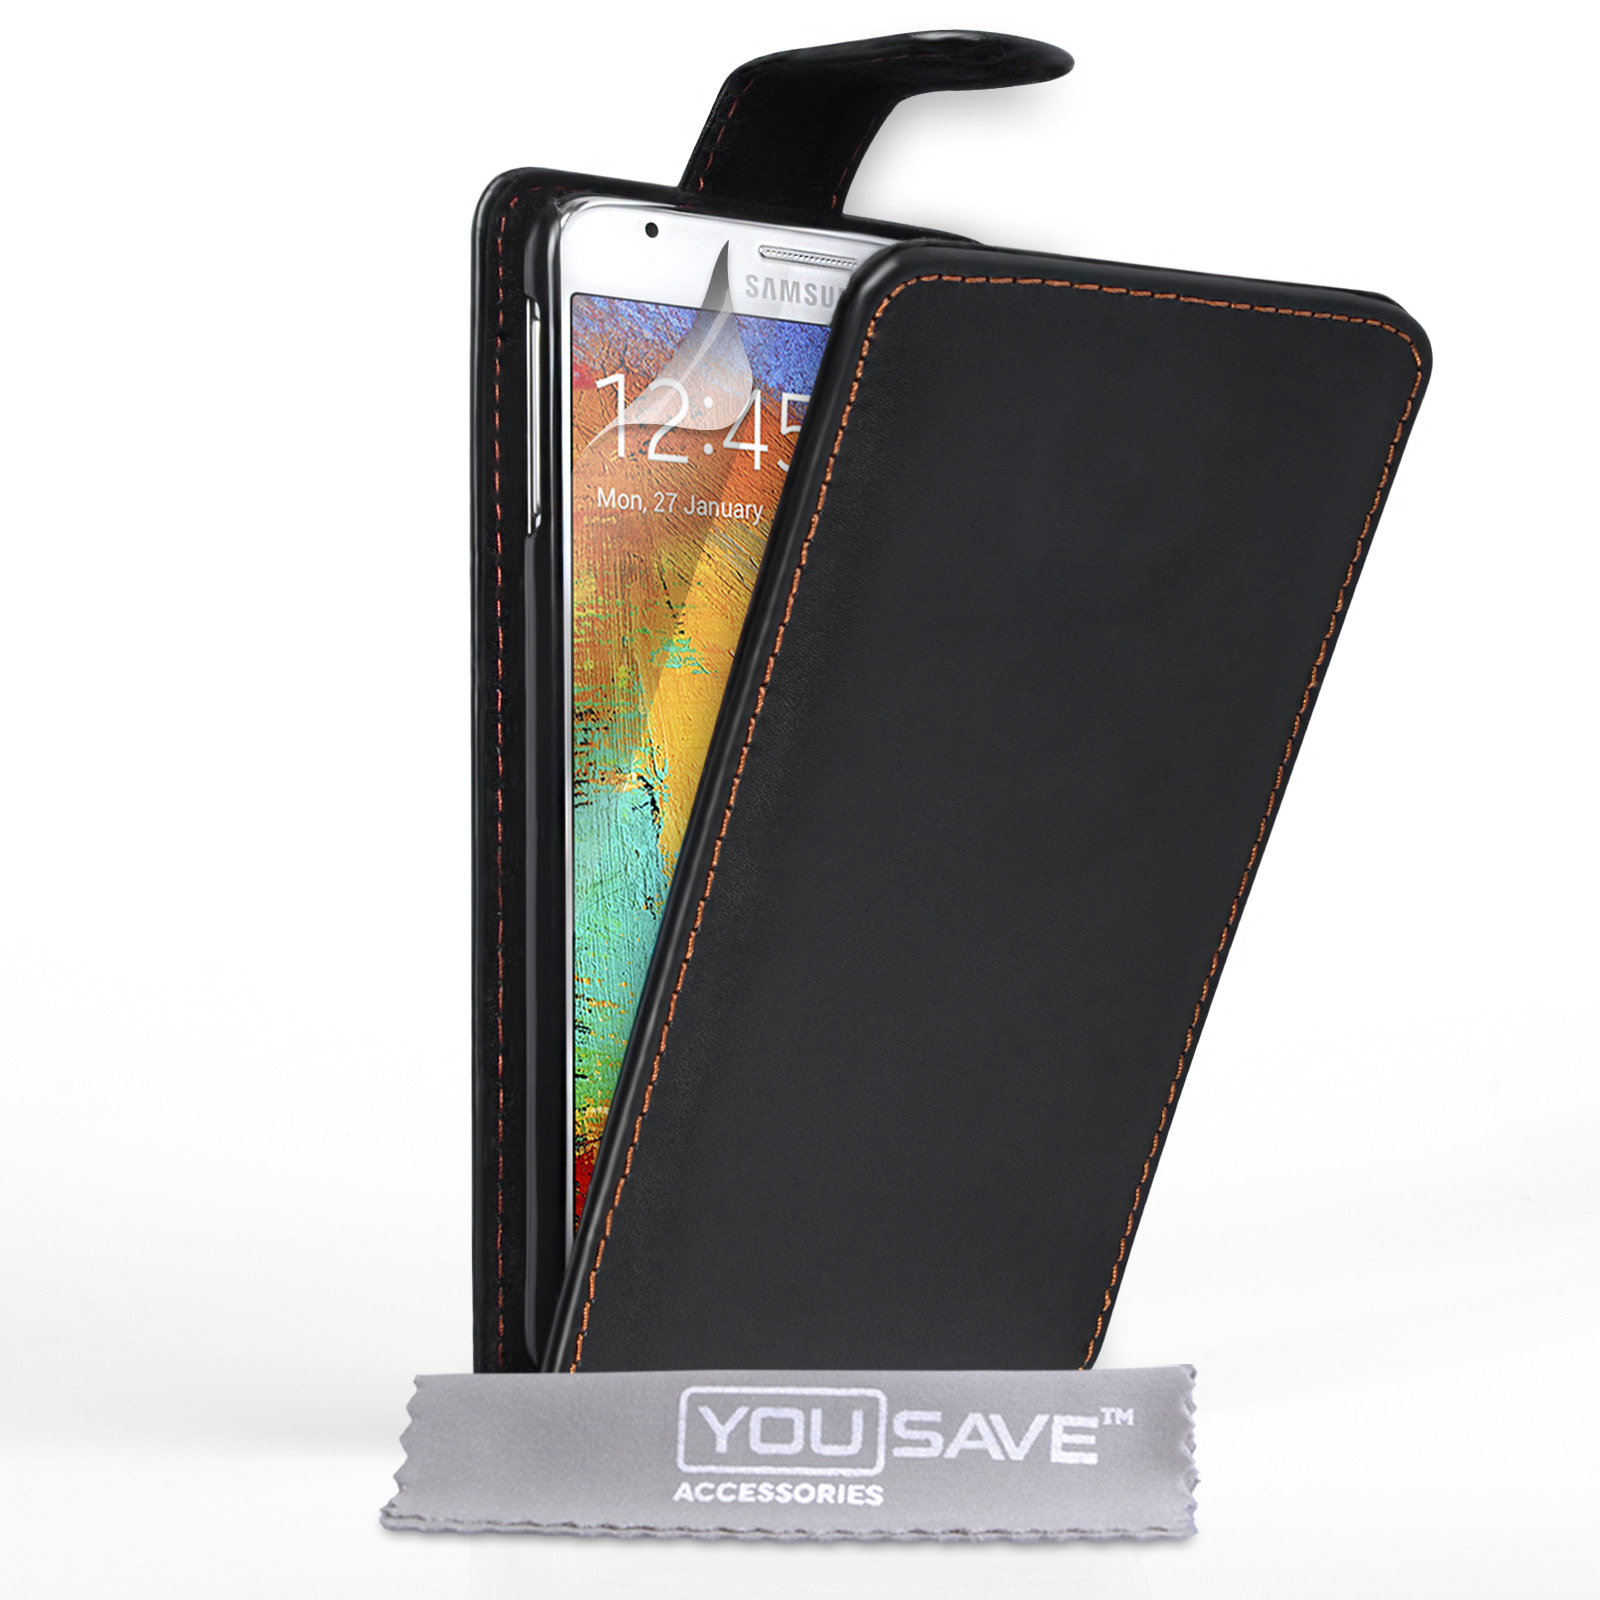 YouSave Samsung Galaxy Note 3 Neo Leather-Effect Flip Case - Black